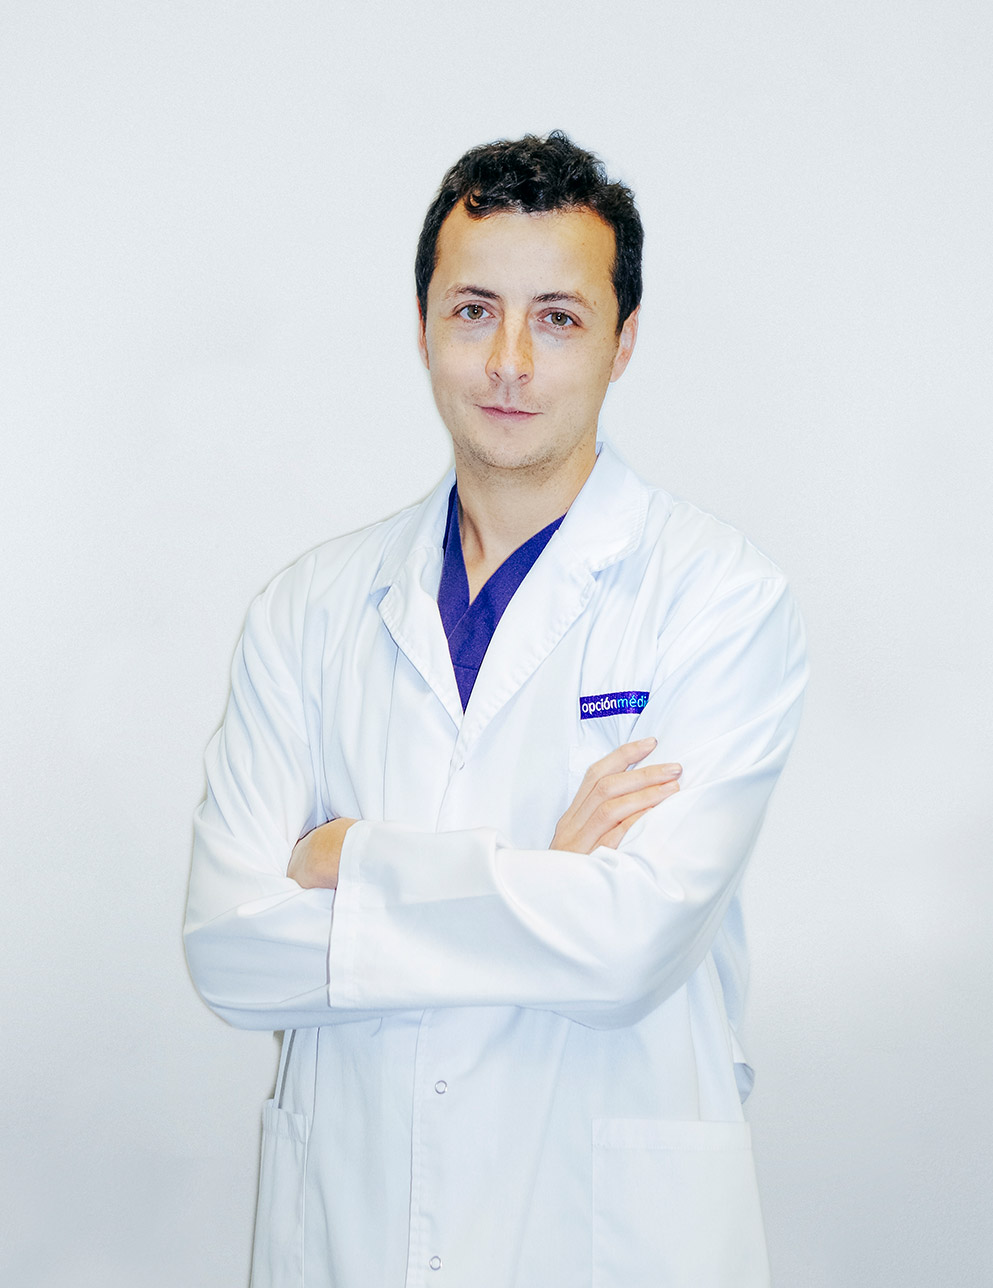 Dr. Cristian Carrasco